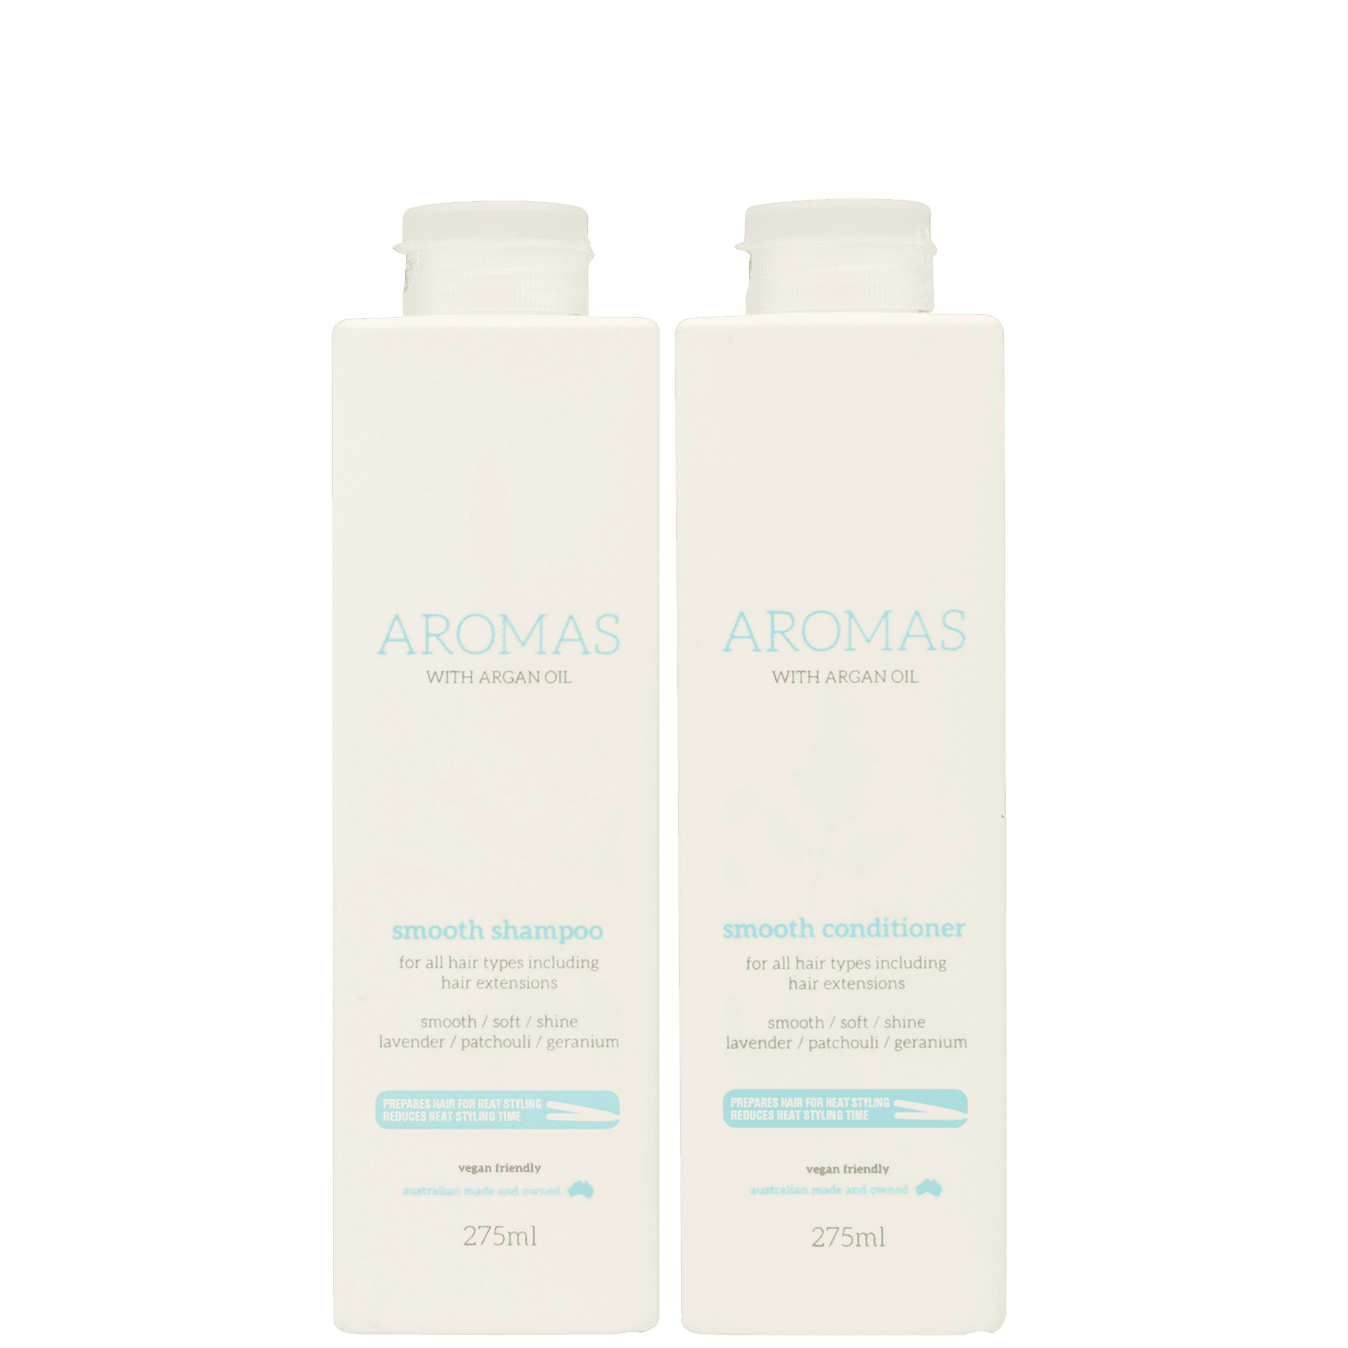 Aromas Smooth Shampoo & Conditioner with Argan Oil